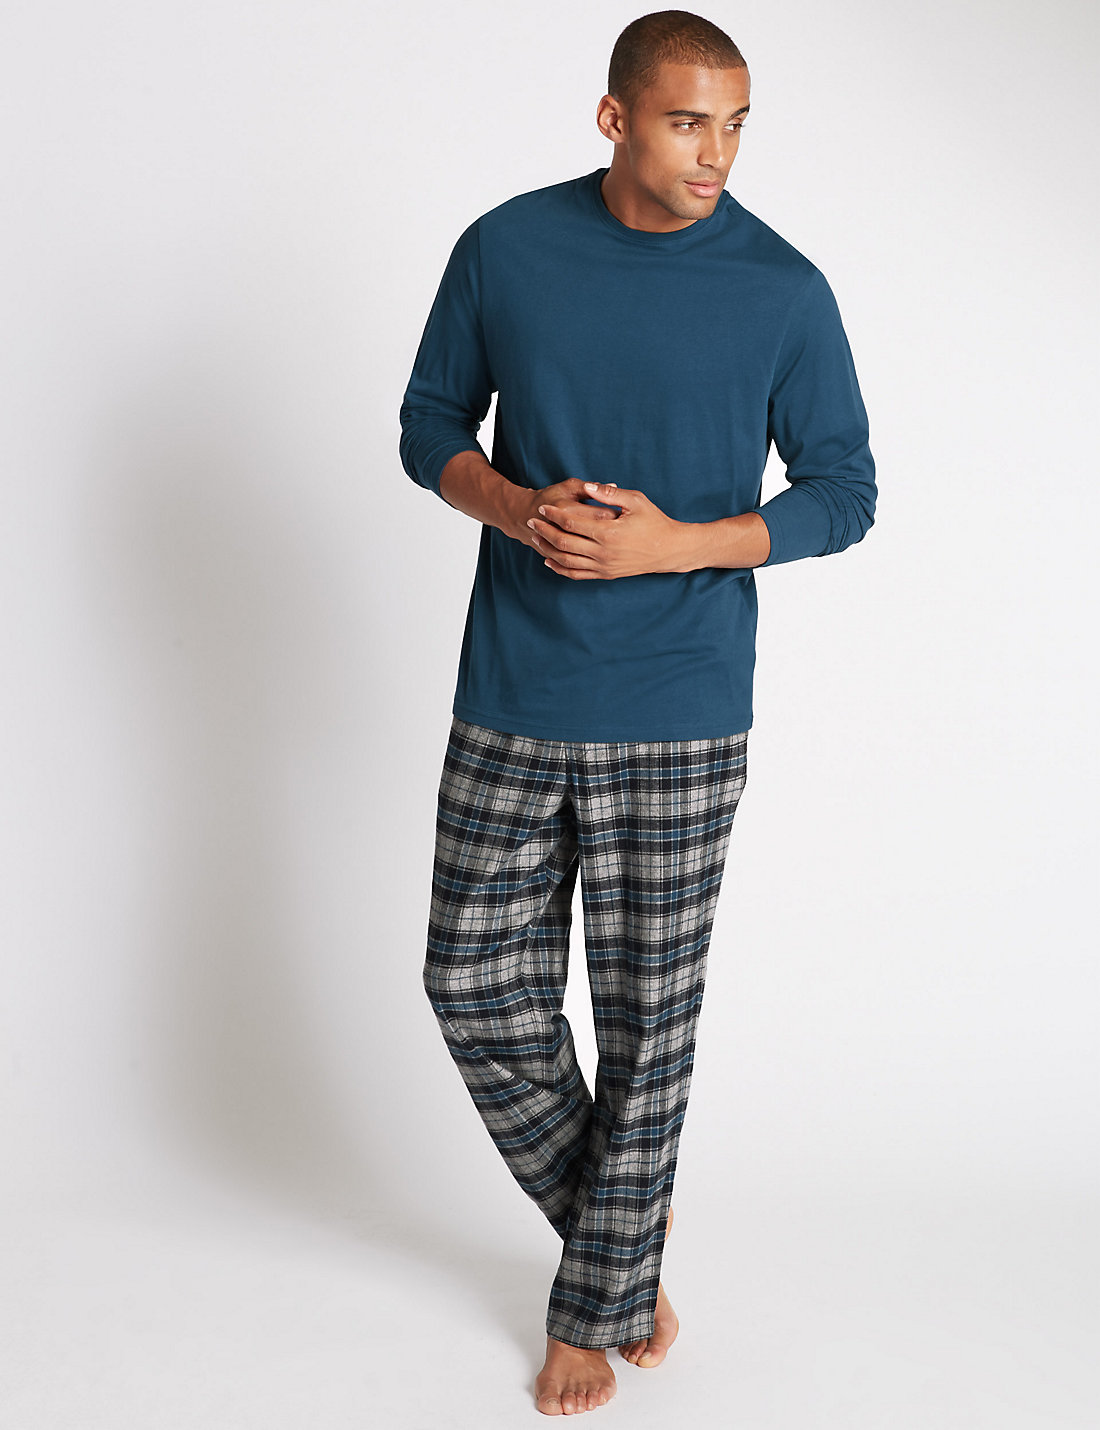 M&S PJs Men